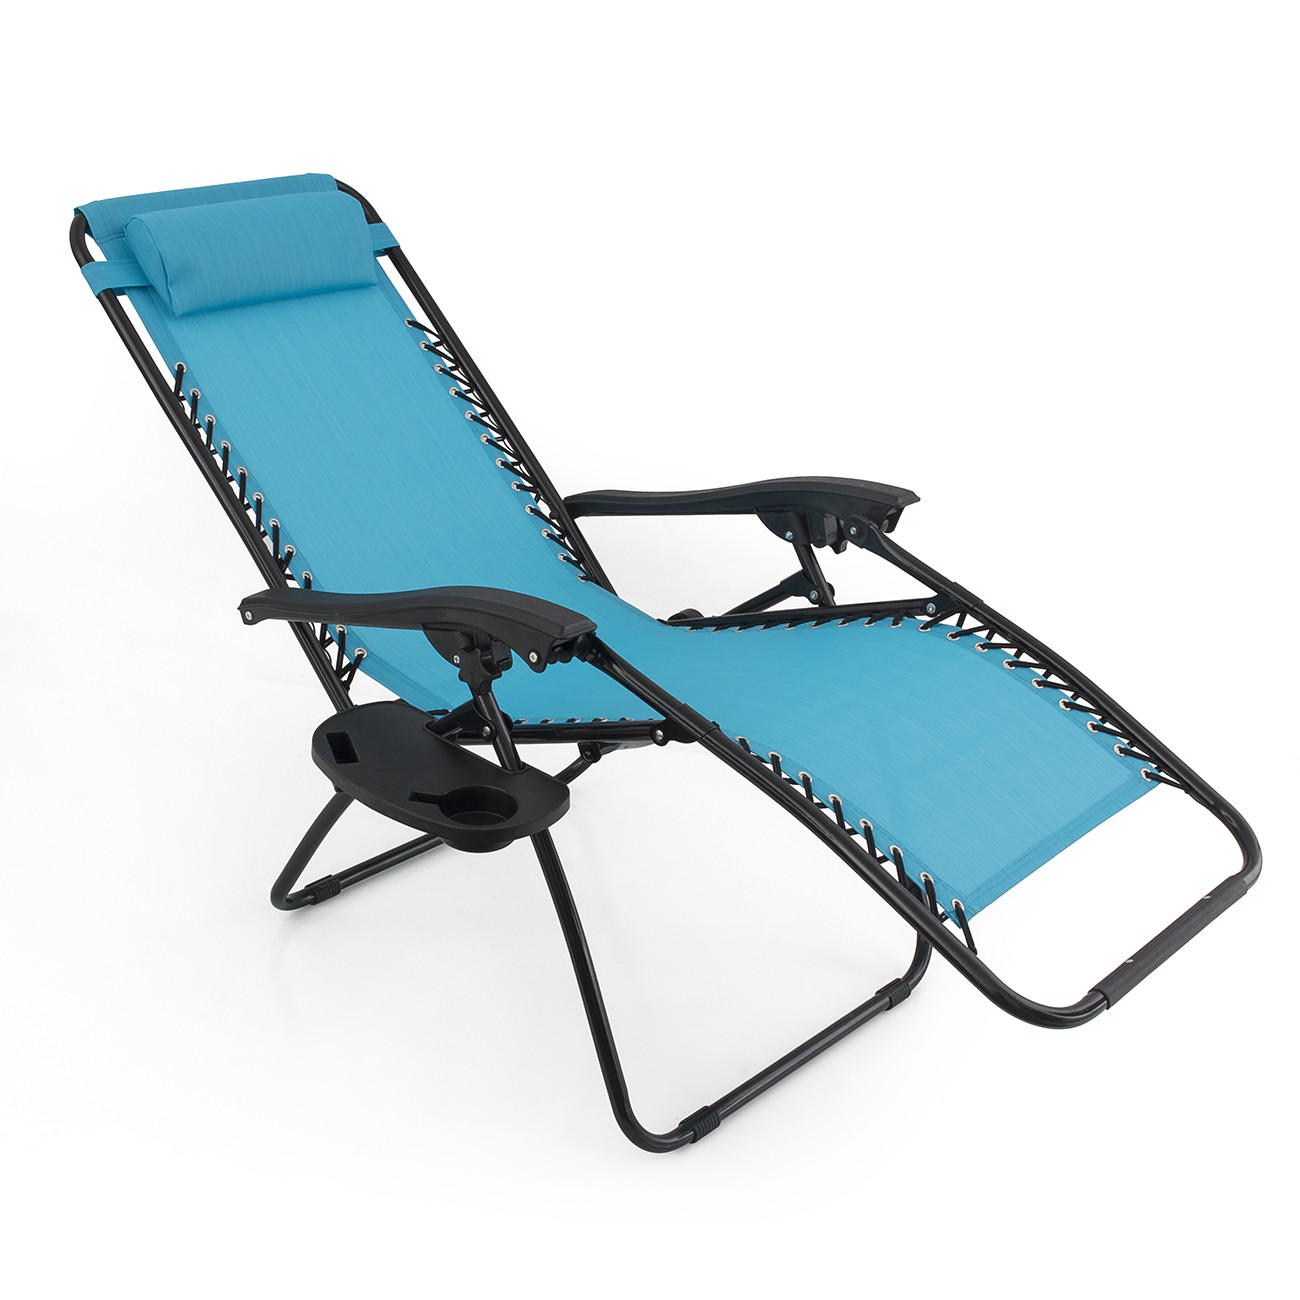 Best ideas about Outdoor Lounge Chairs . Save or Pin 2 Folding Zero Gravity Reclining Lounge Chairs Utility Now.